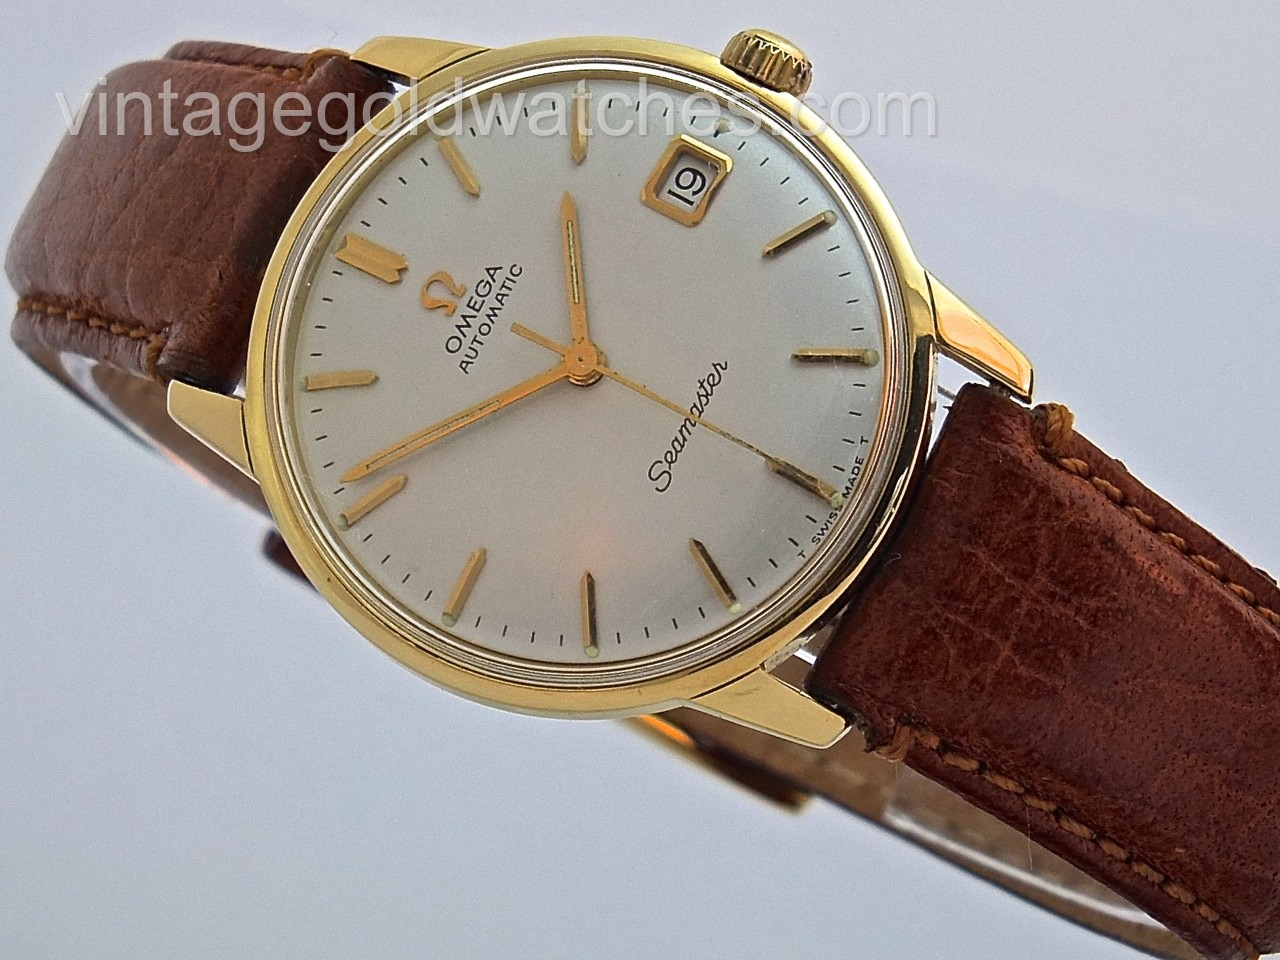 Omega seamaster 18k 1962 plus box sorry now sold 15th nov 39 13 vintage gold watches for Omega watch vintage